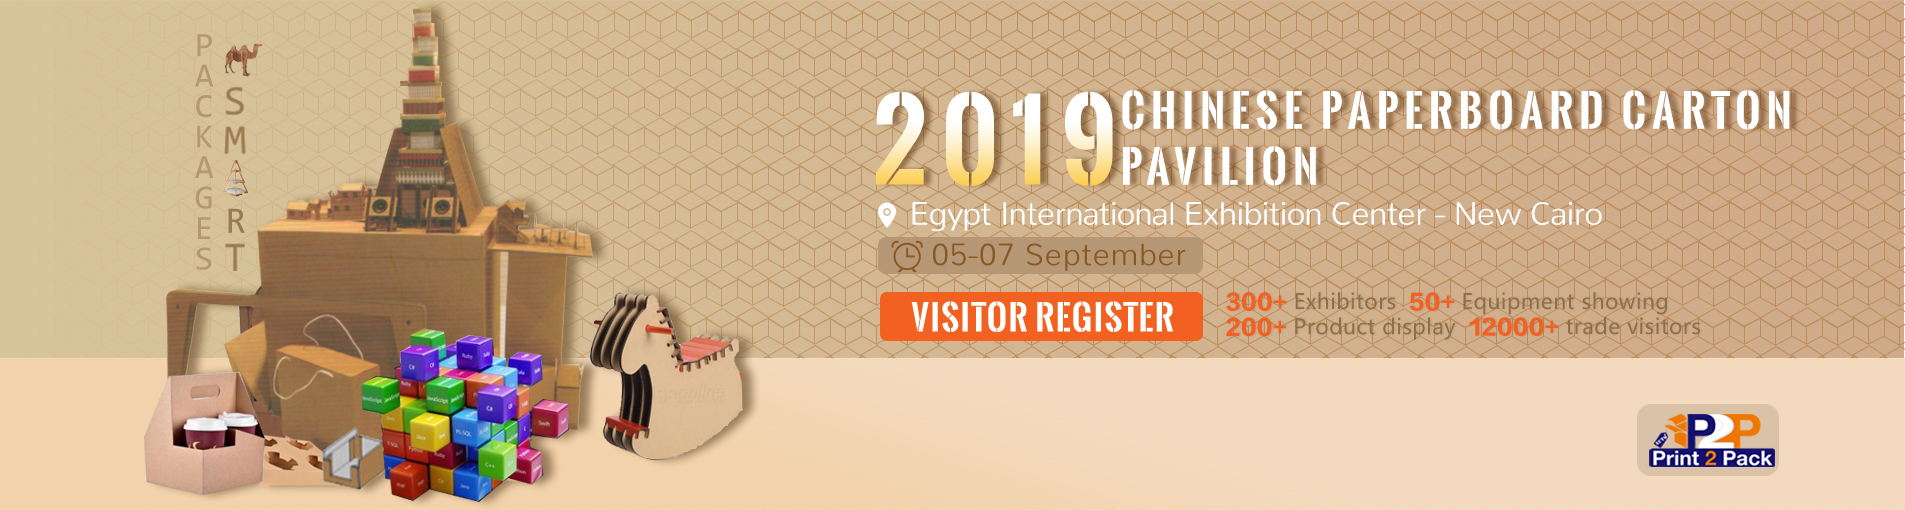 Auto Print 2 Pack Cairo Fair | 5-7 Sep, 2019 Egypt International